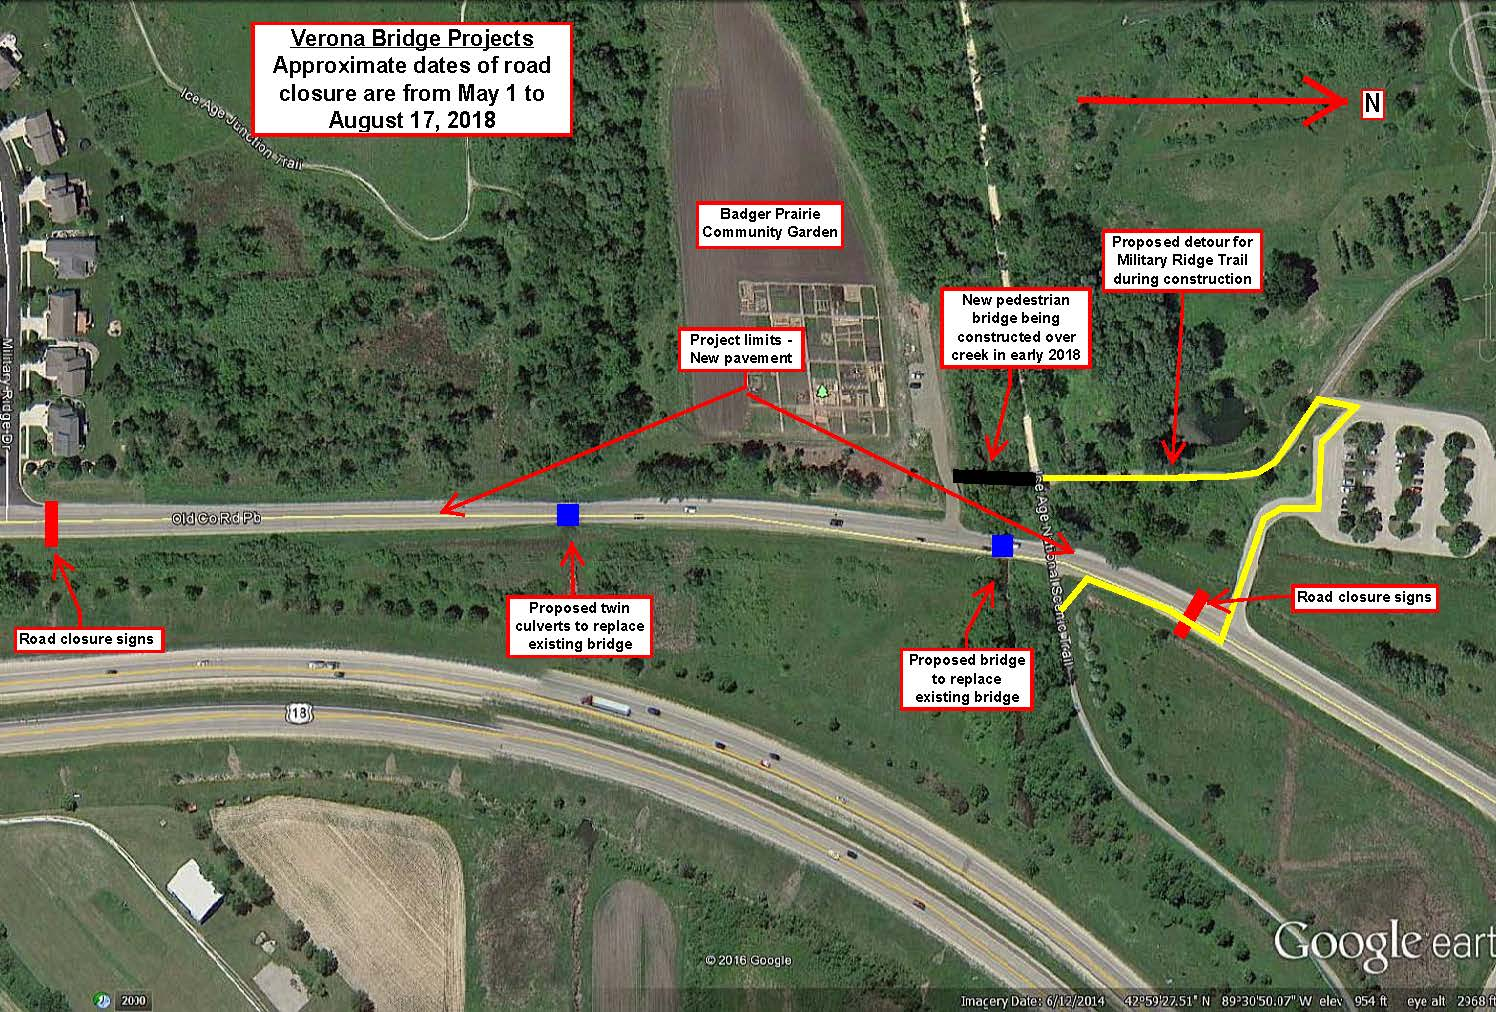 Verona bridge project road closure on old PB